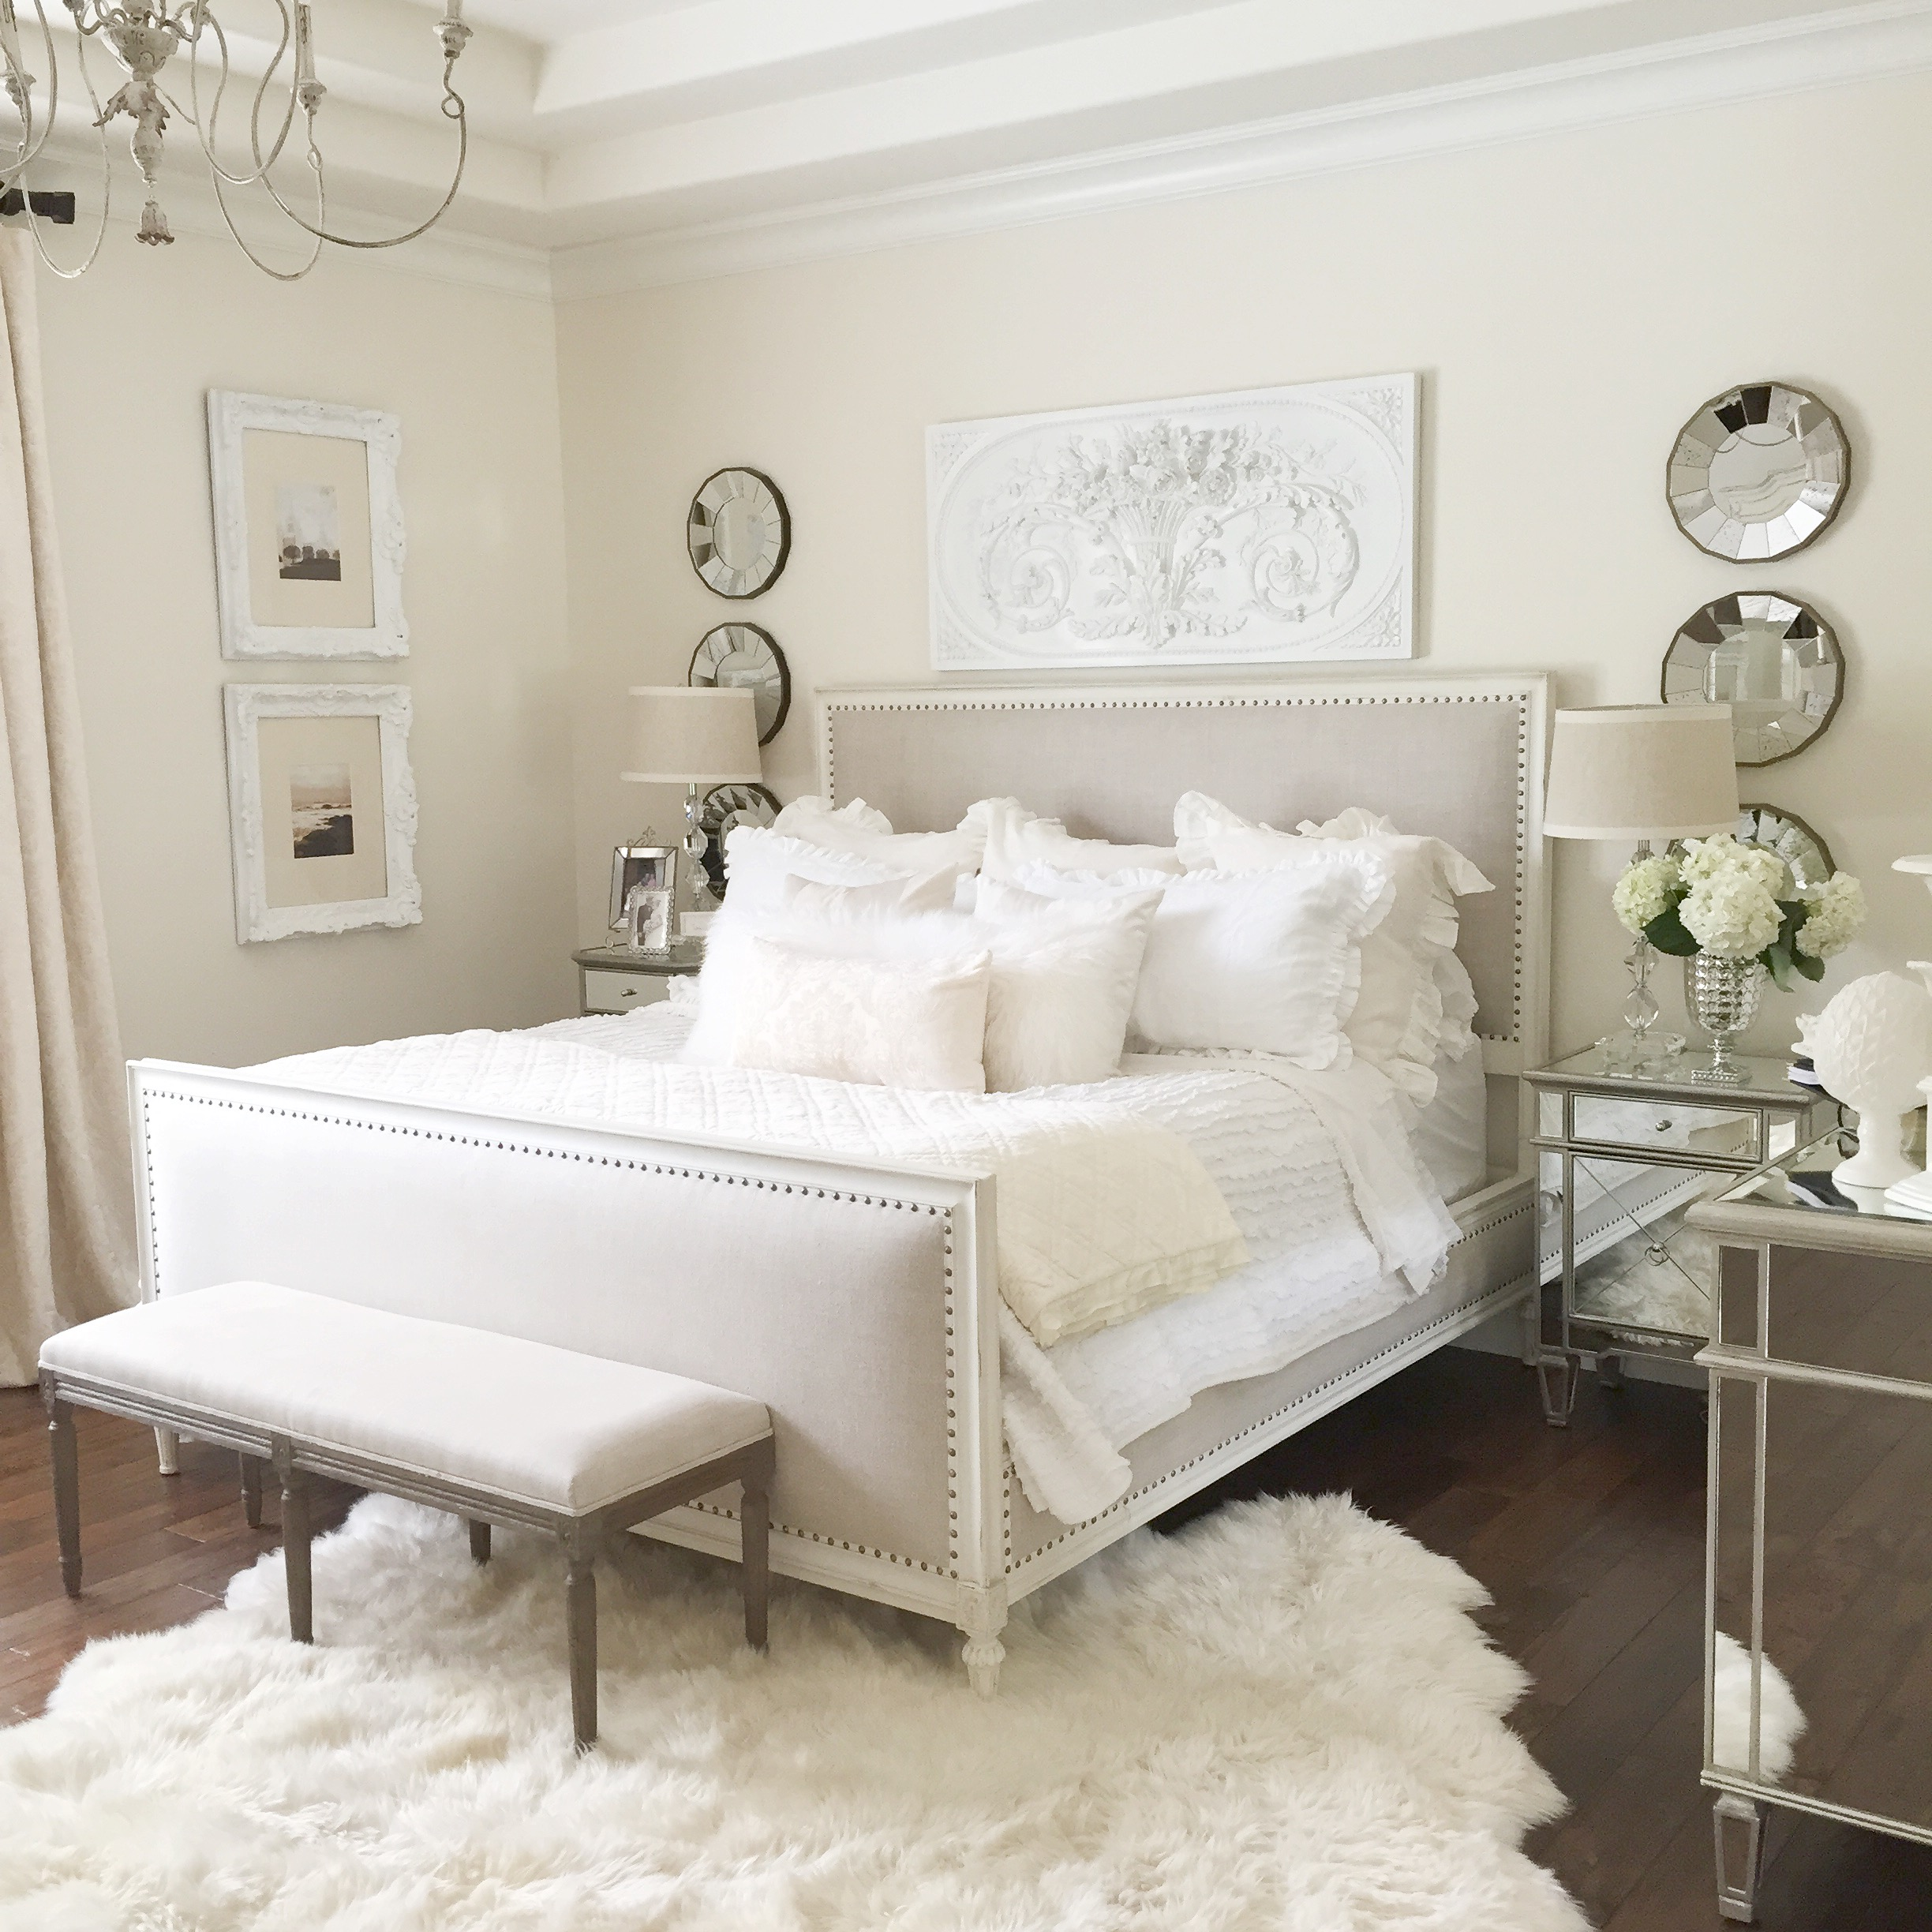 mirrored bedroom furniture ideas photo - 8